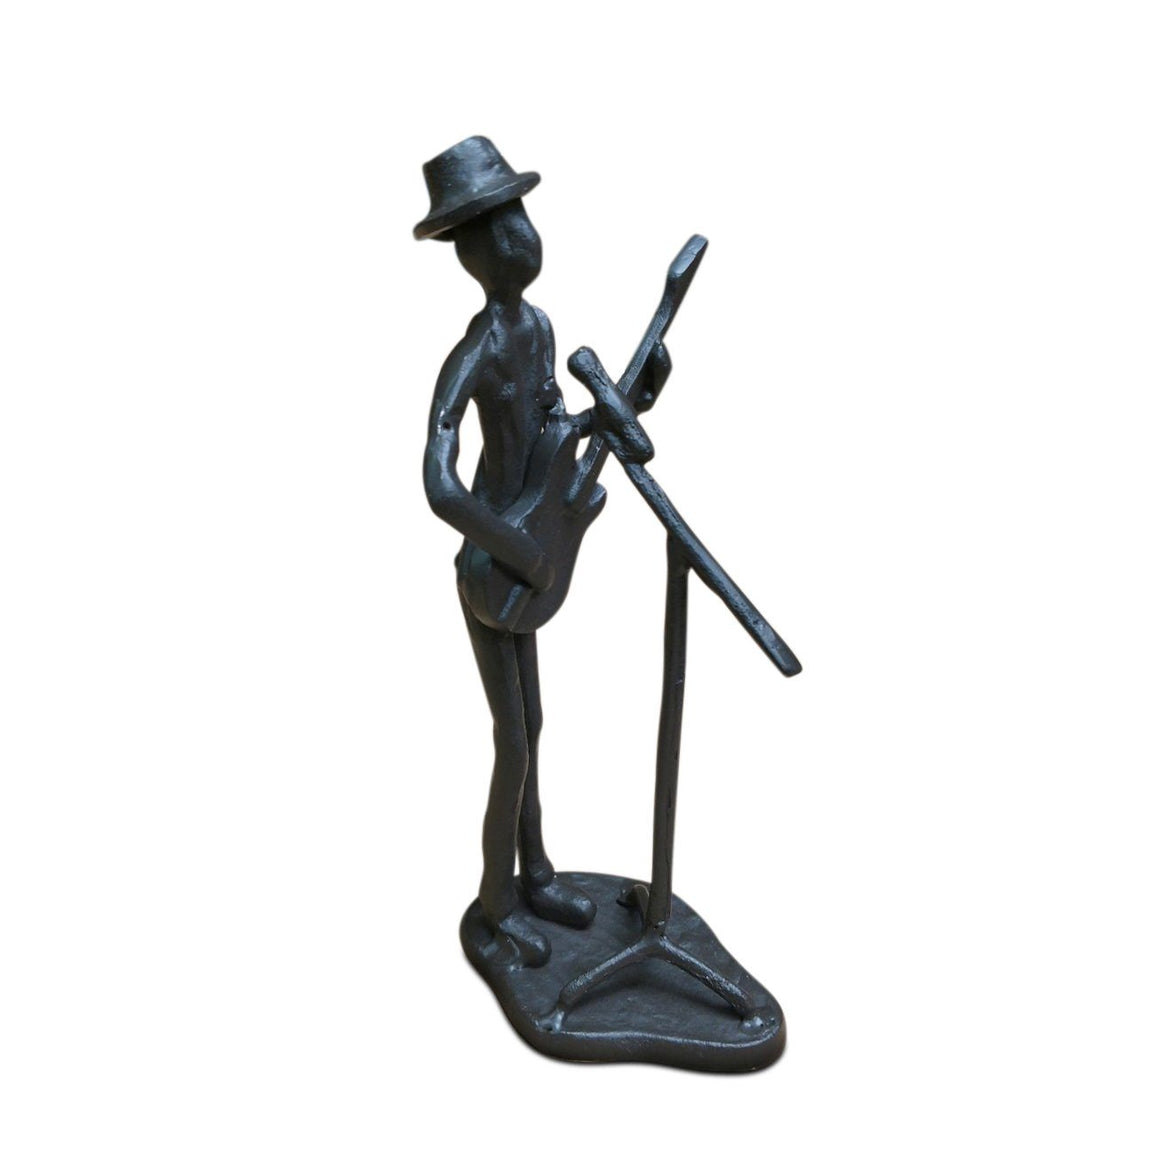 Cast Iron Musician Playing Guitar Sculpture - Rustic Deco Incorporated